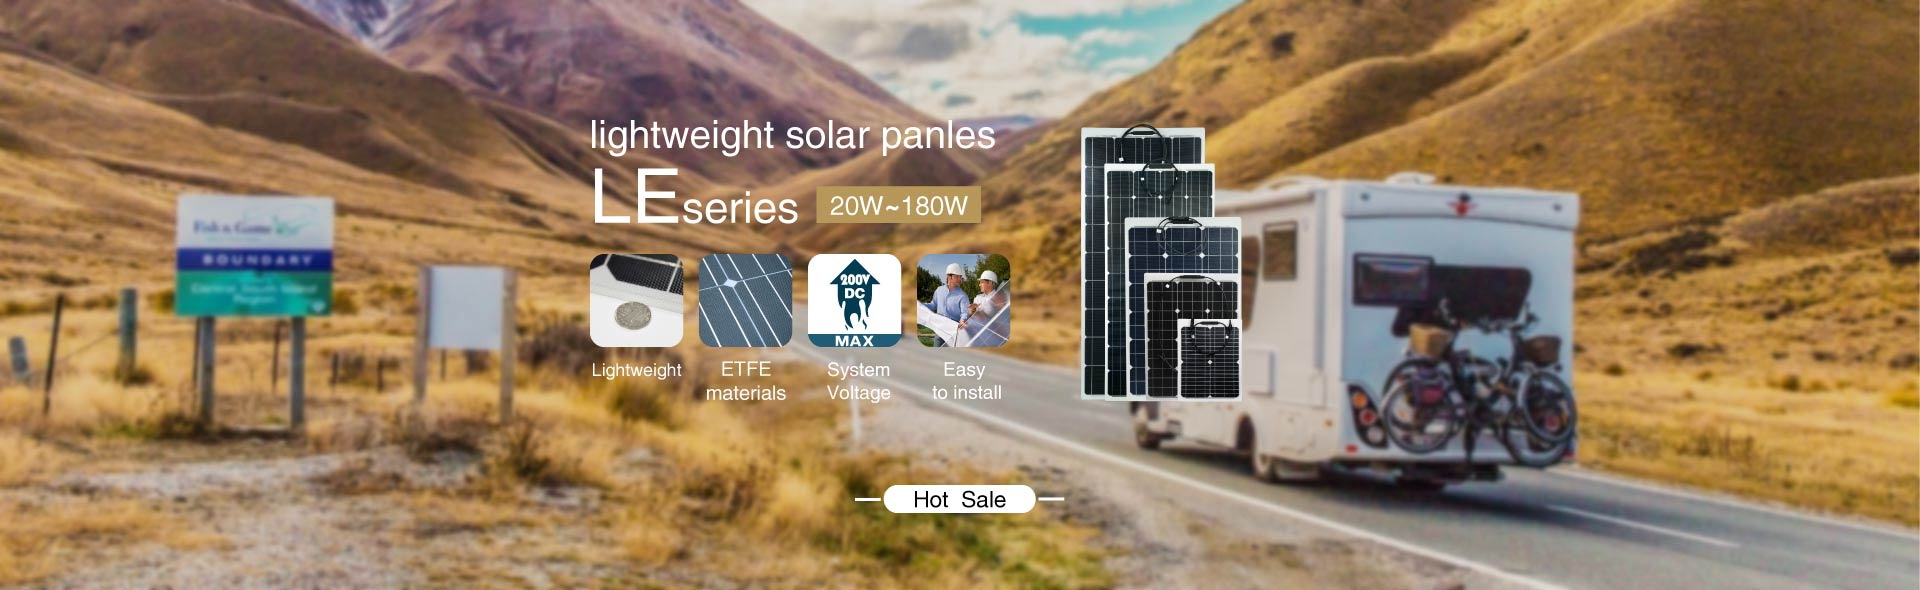 lightweight-solar panel